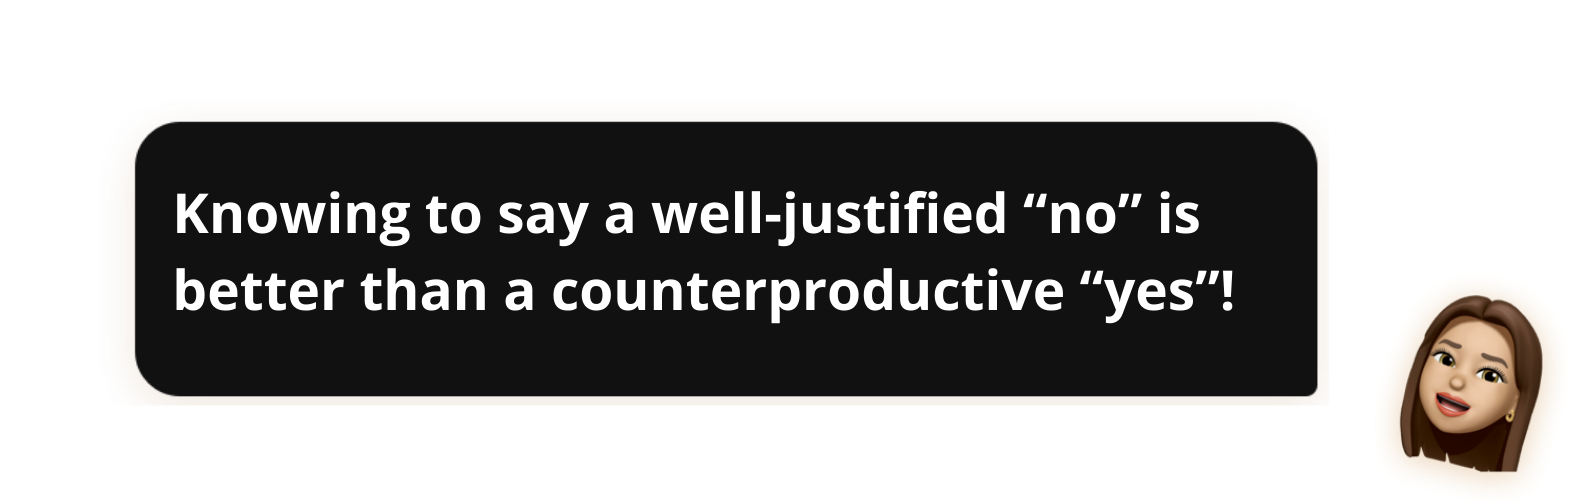 """Knowing to say a well-justified """"no"""" is better than a counterproductive """"yes""""!"""